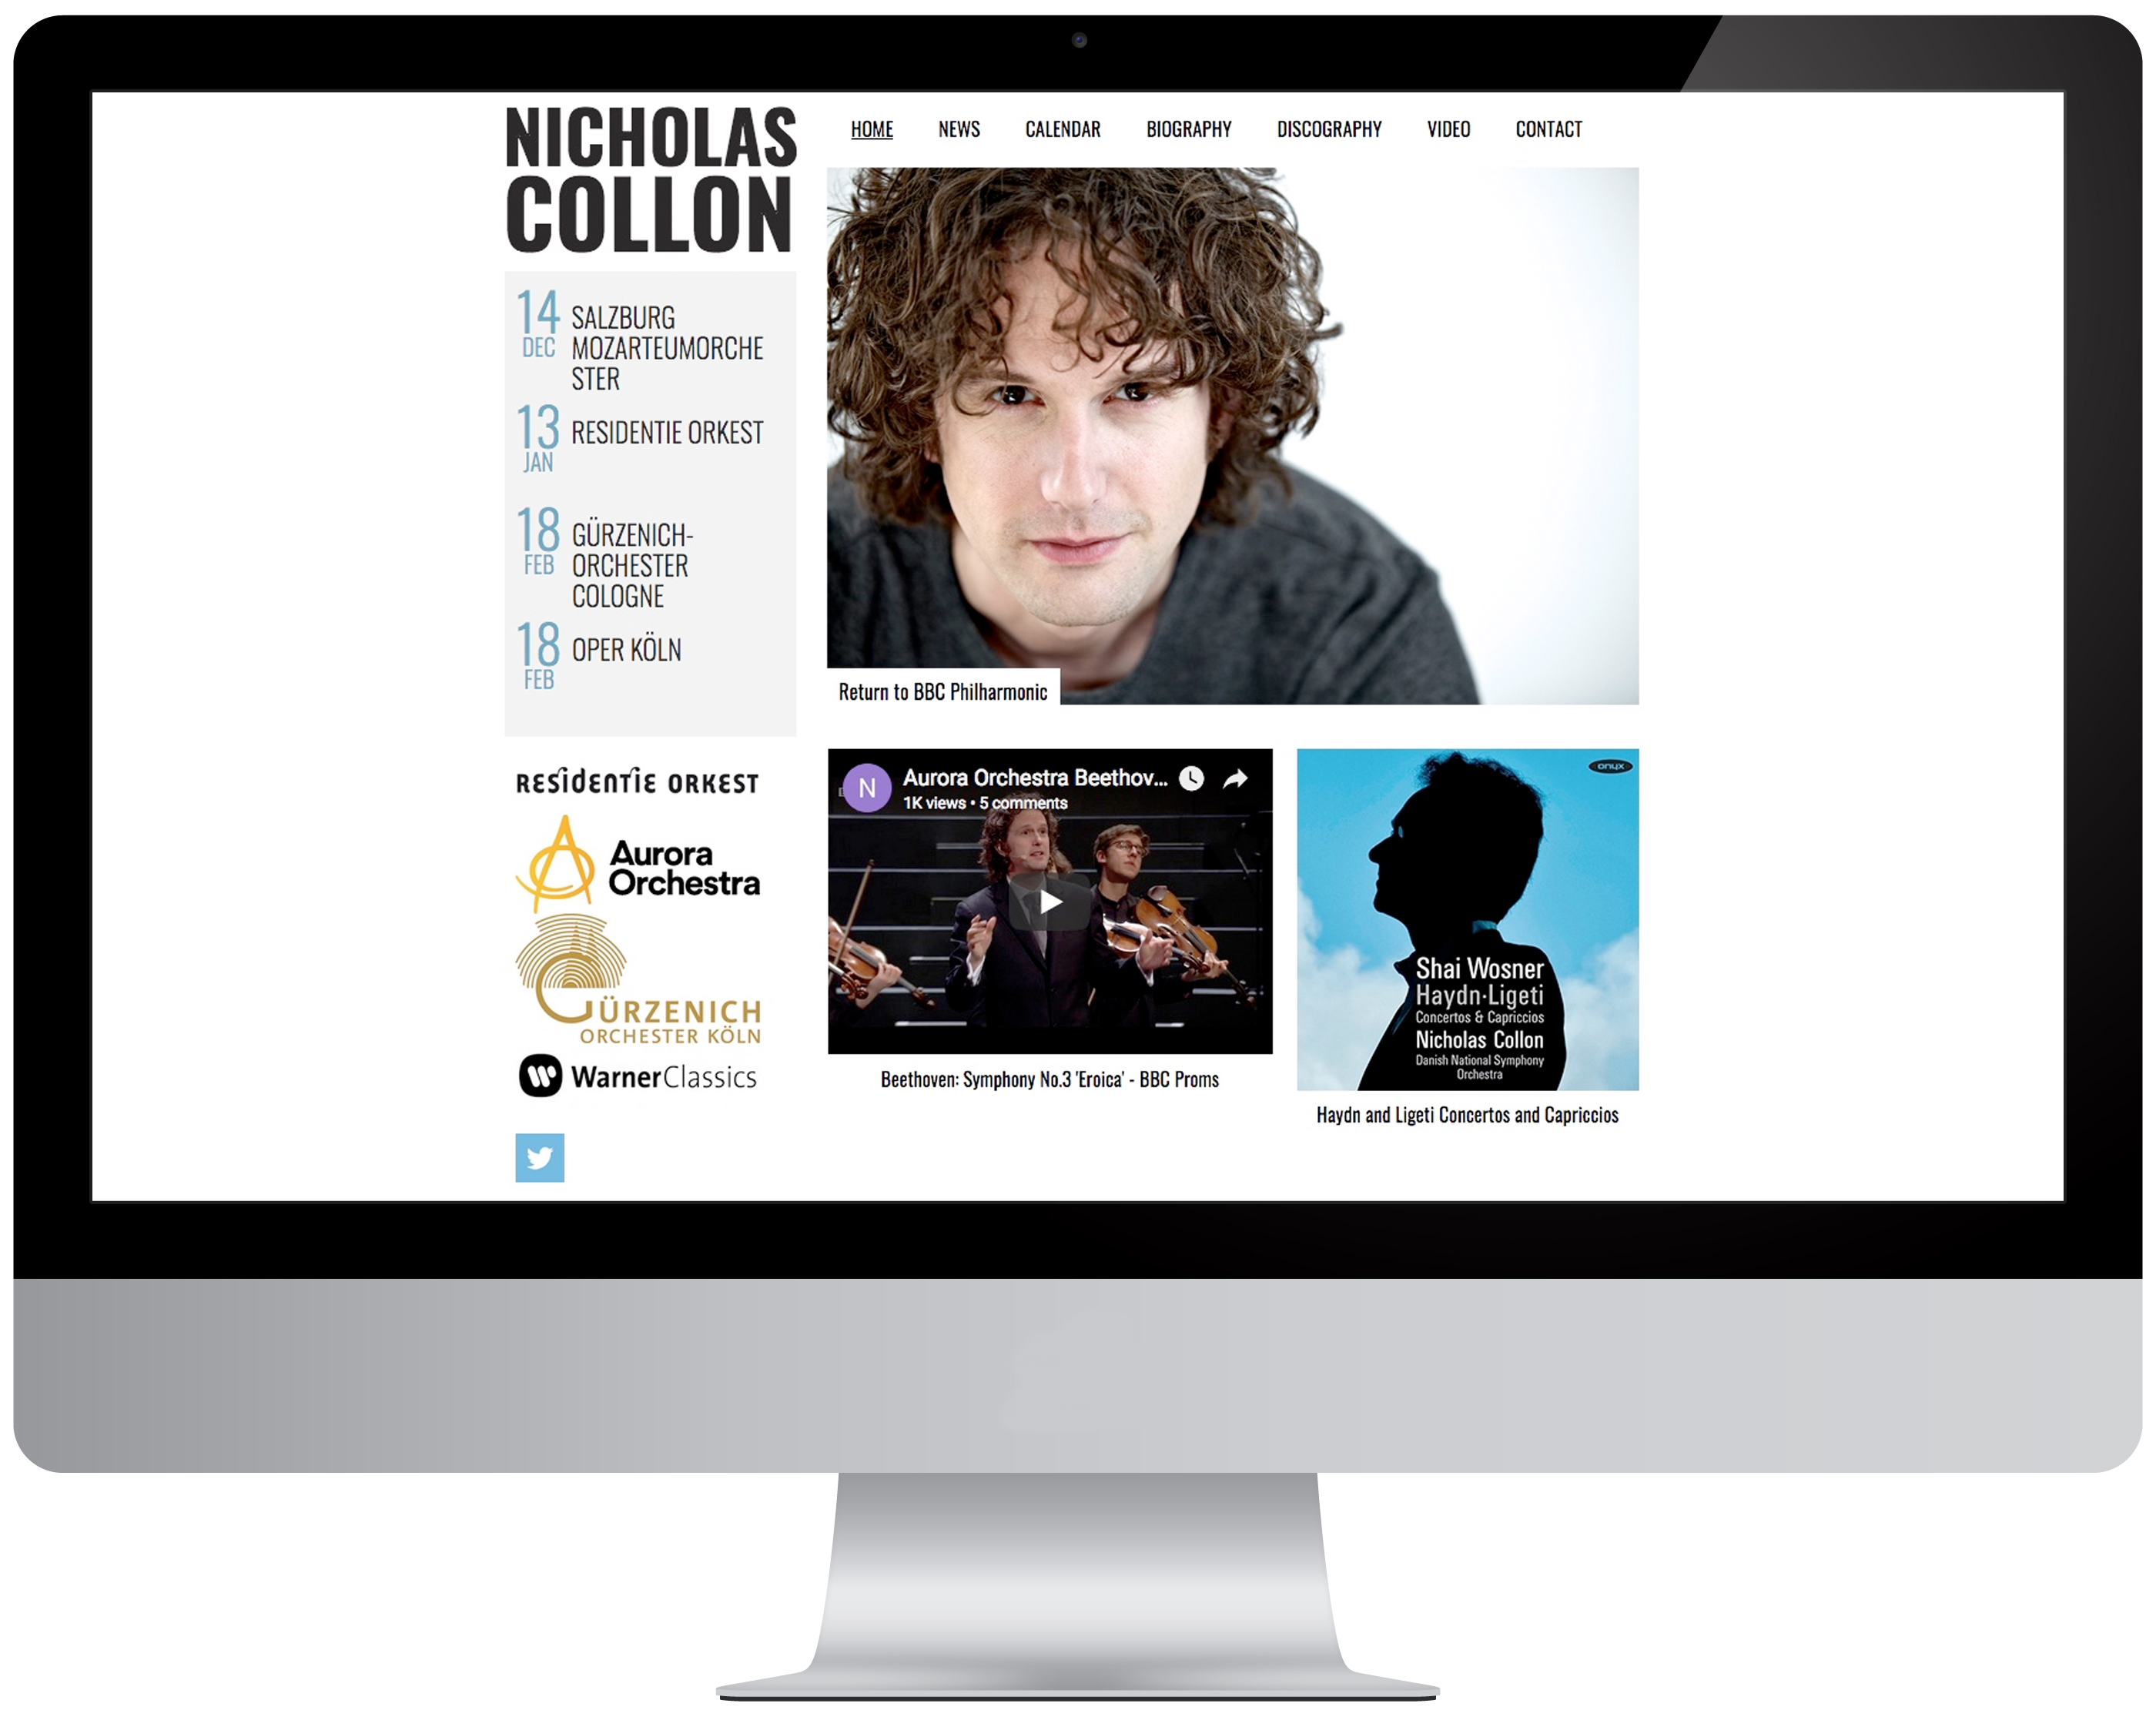 Video Production and Website Design Services for Musicians 29